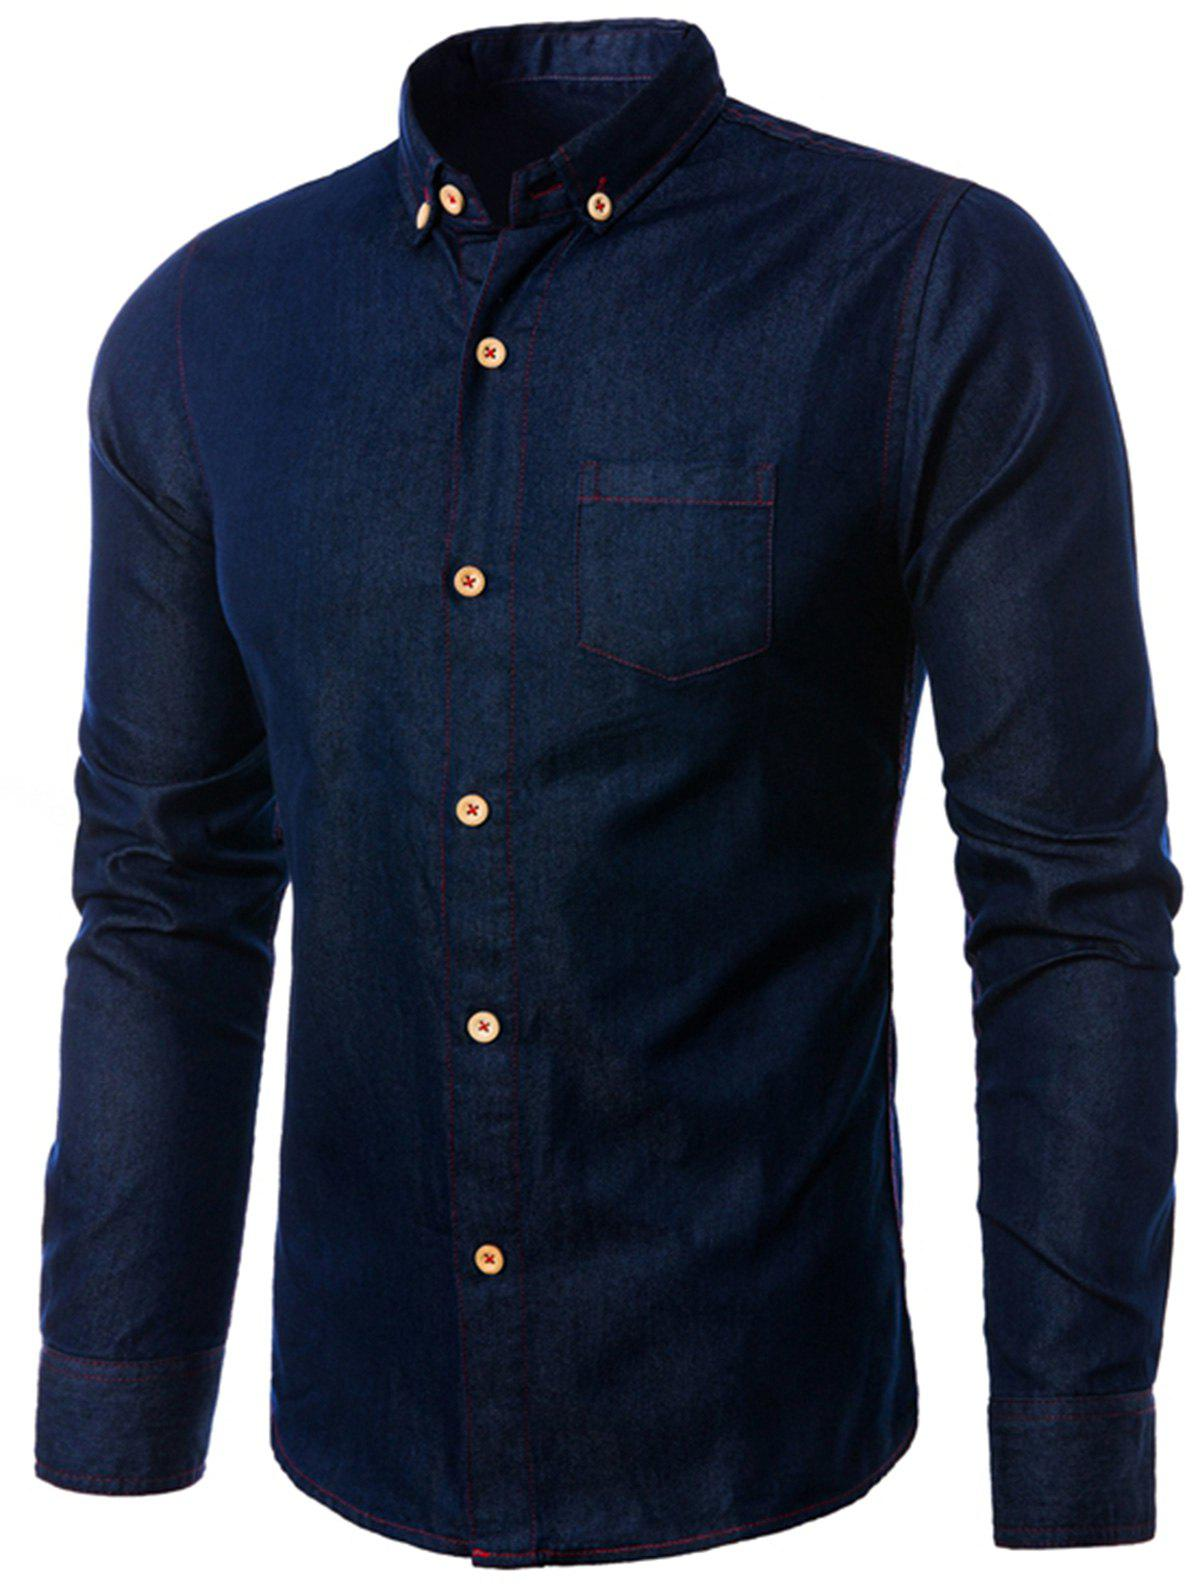 Fashion Pocket Denim Button Down Shirt